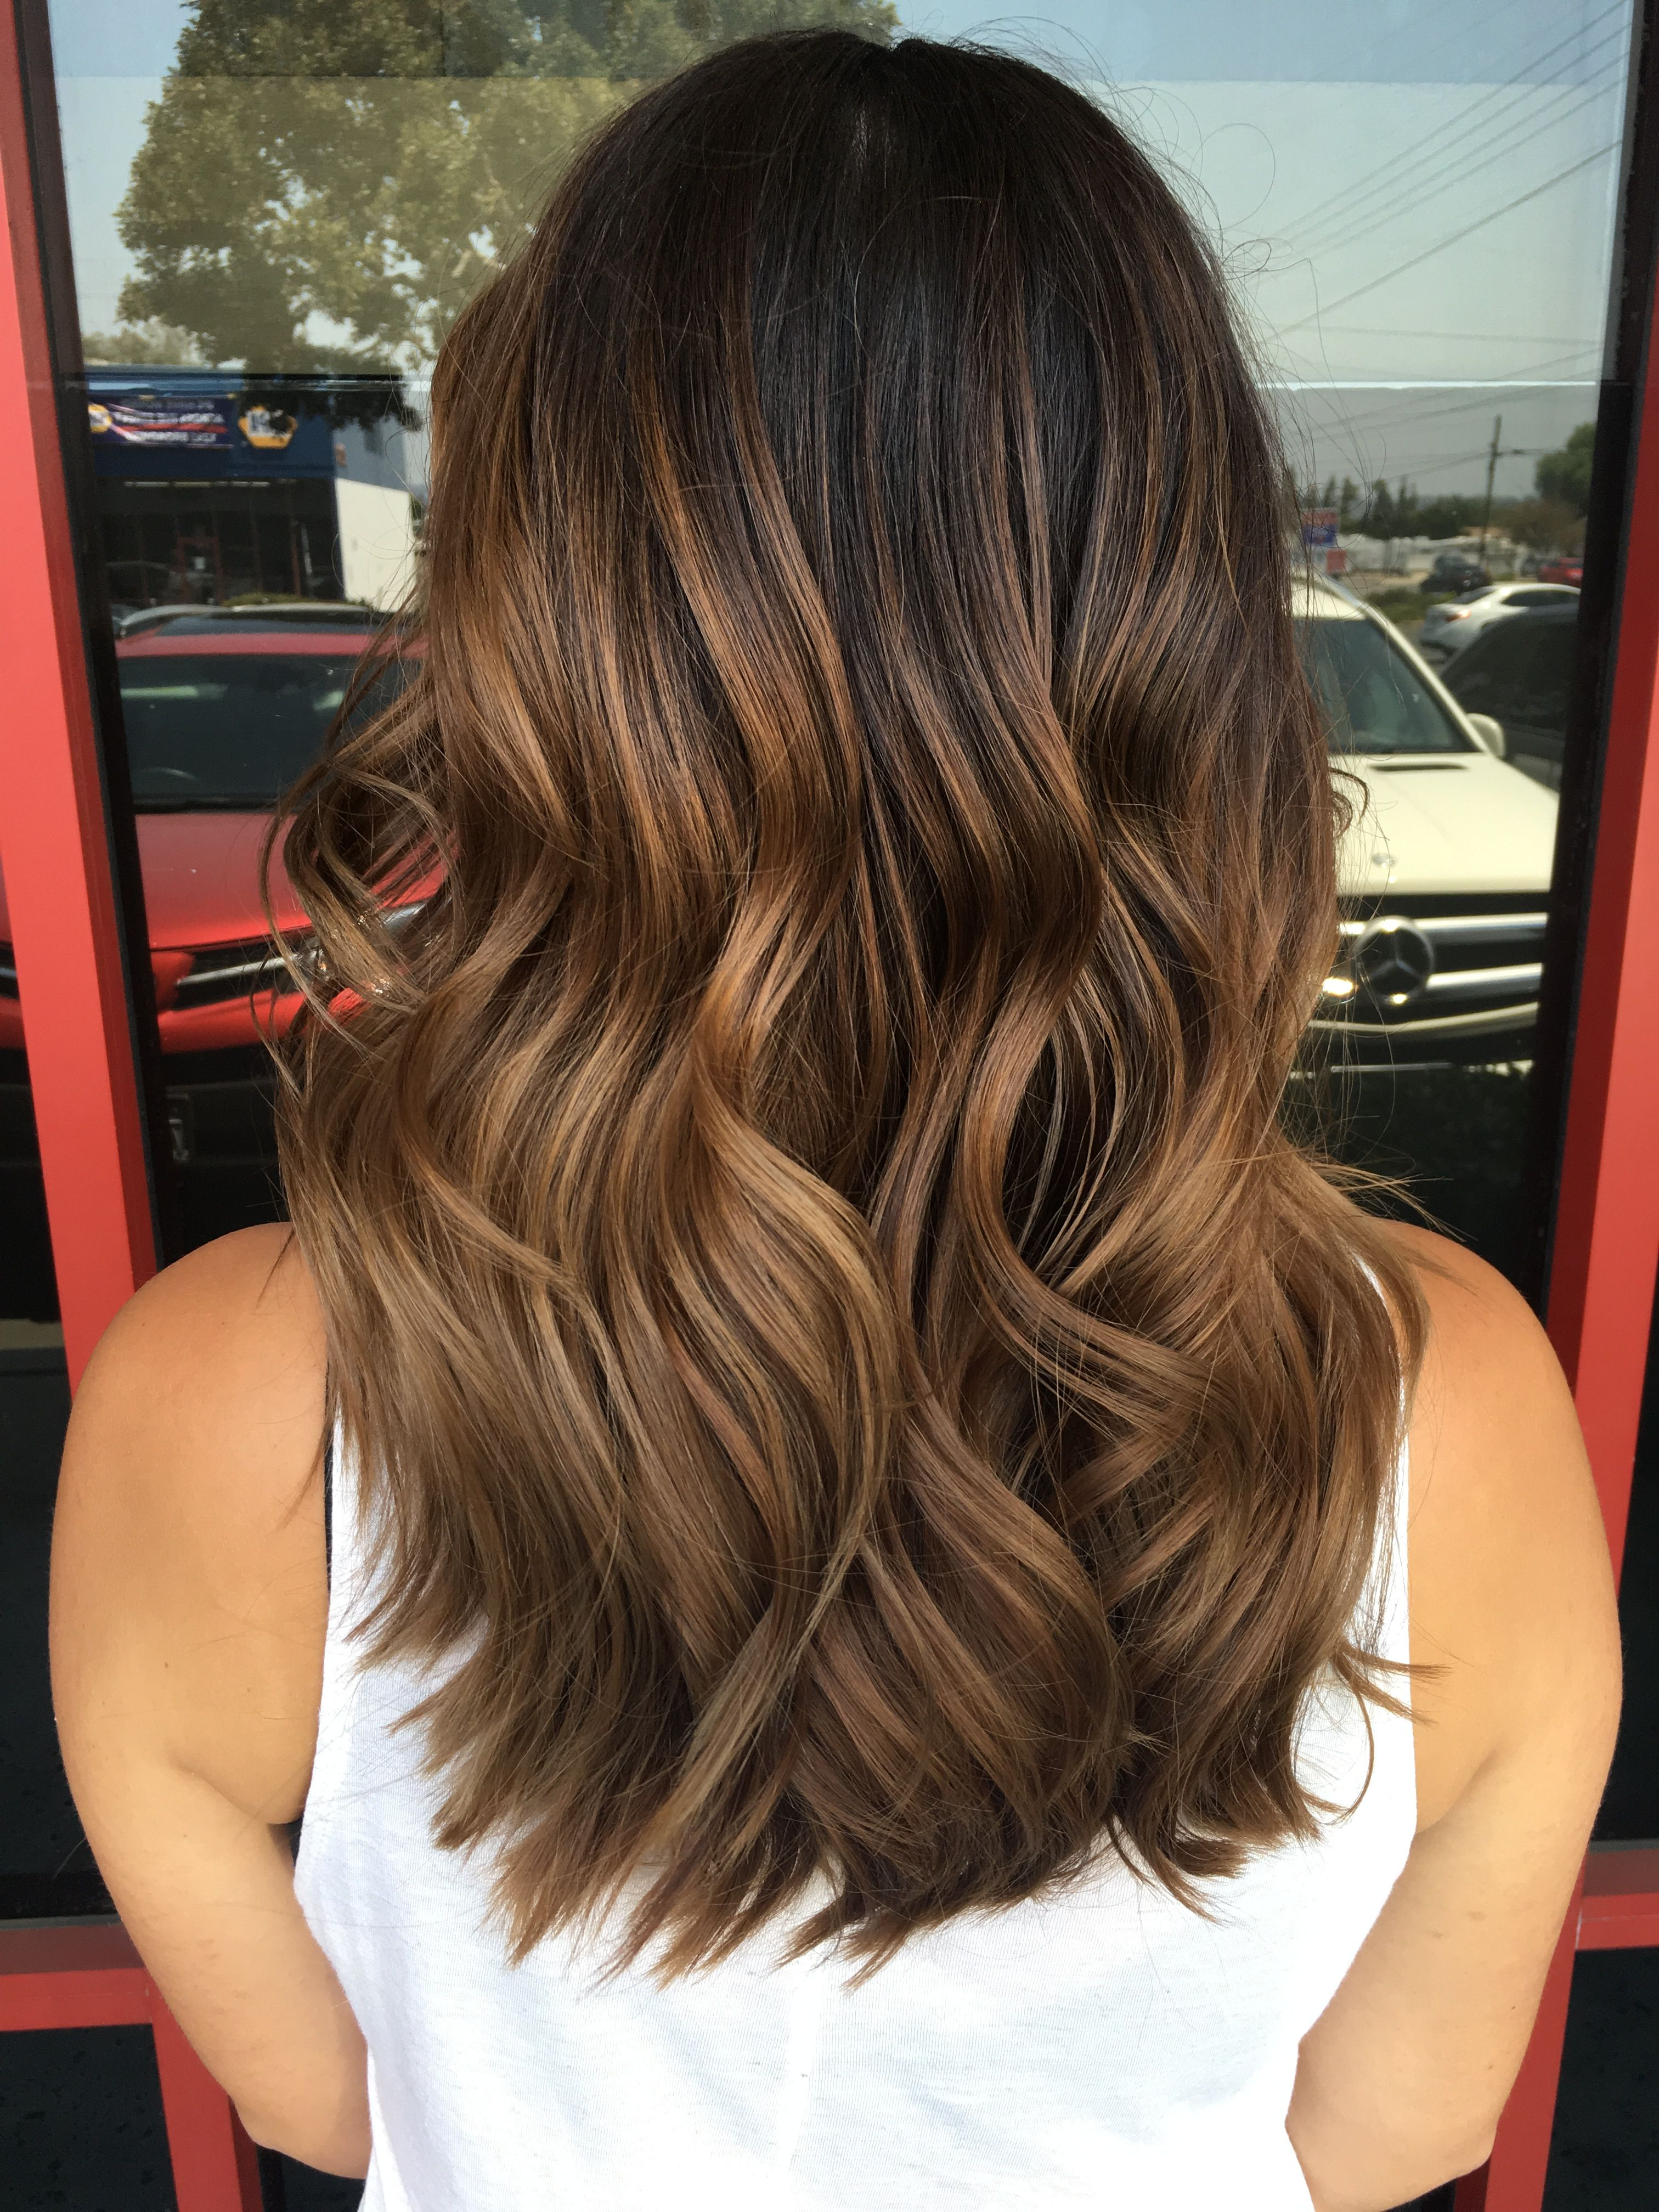 Balayage Hair Balayage Highlights Brown Balayage Hair Highlights